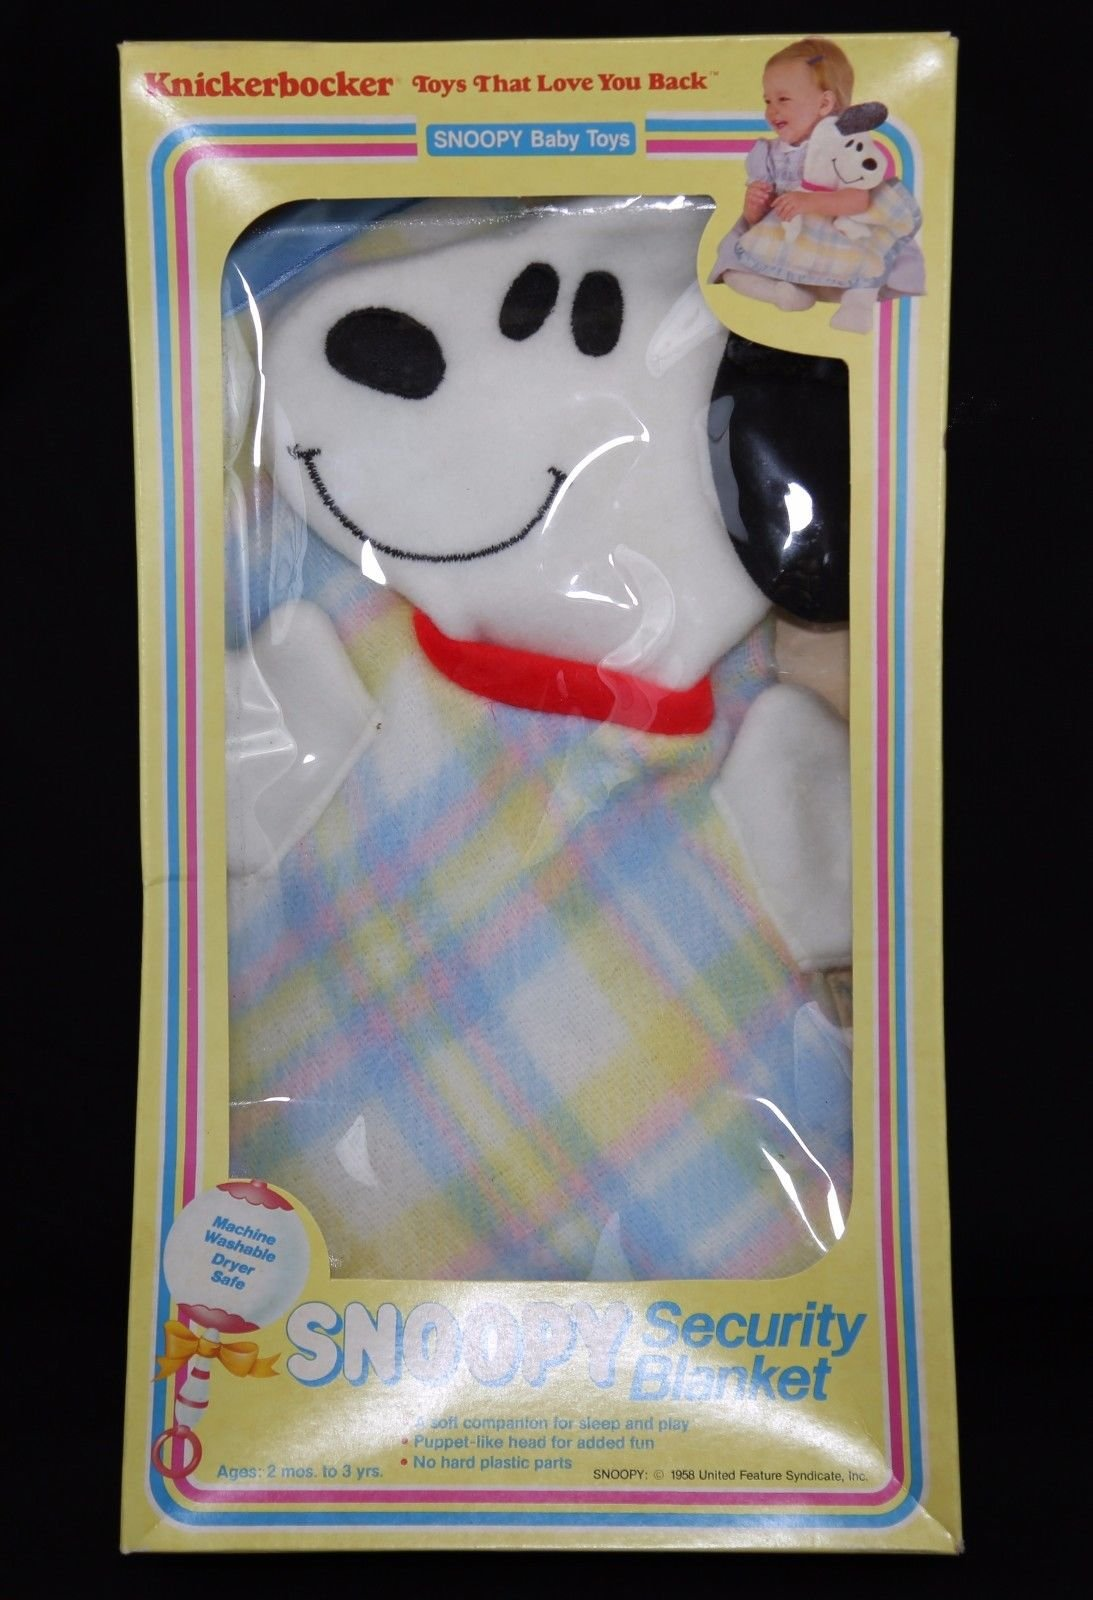 Vintage 1970's Peanuts Baby Snoopy Security Lovey Blanket